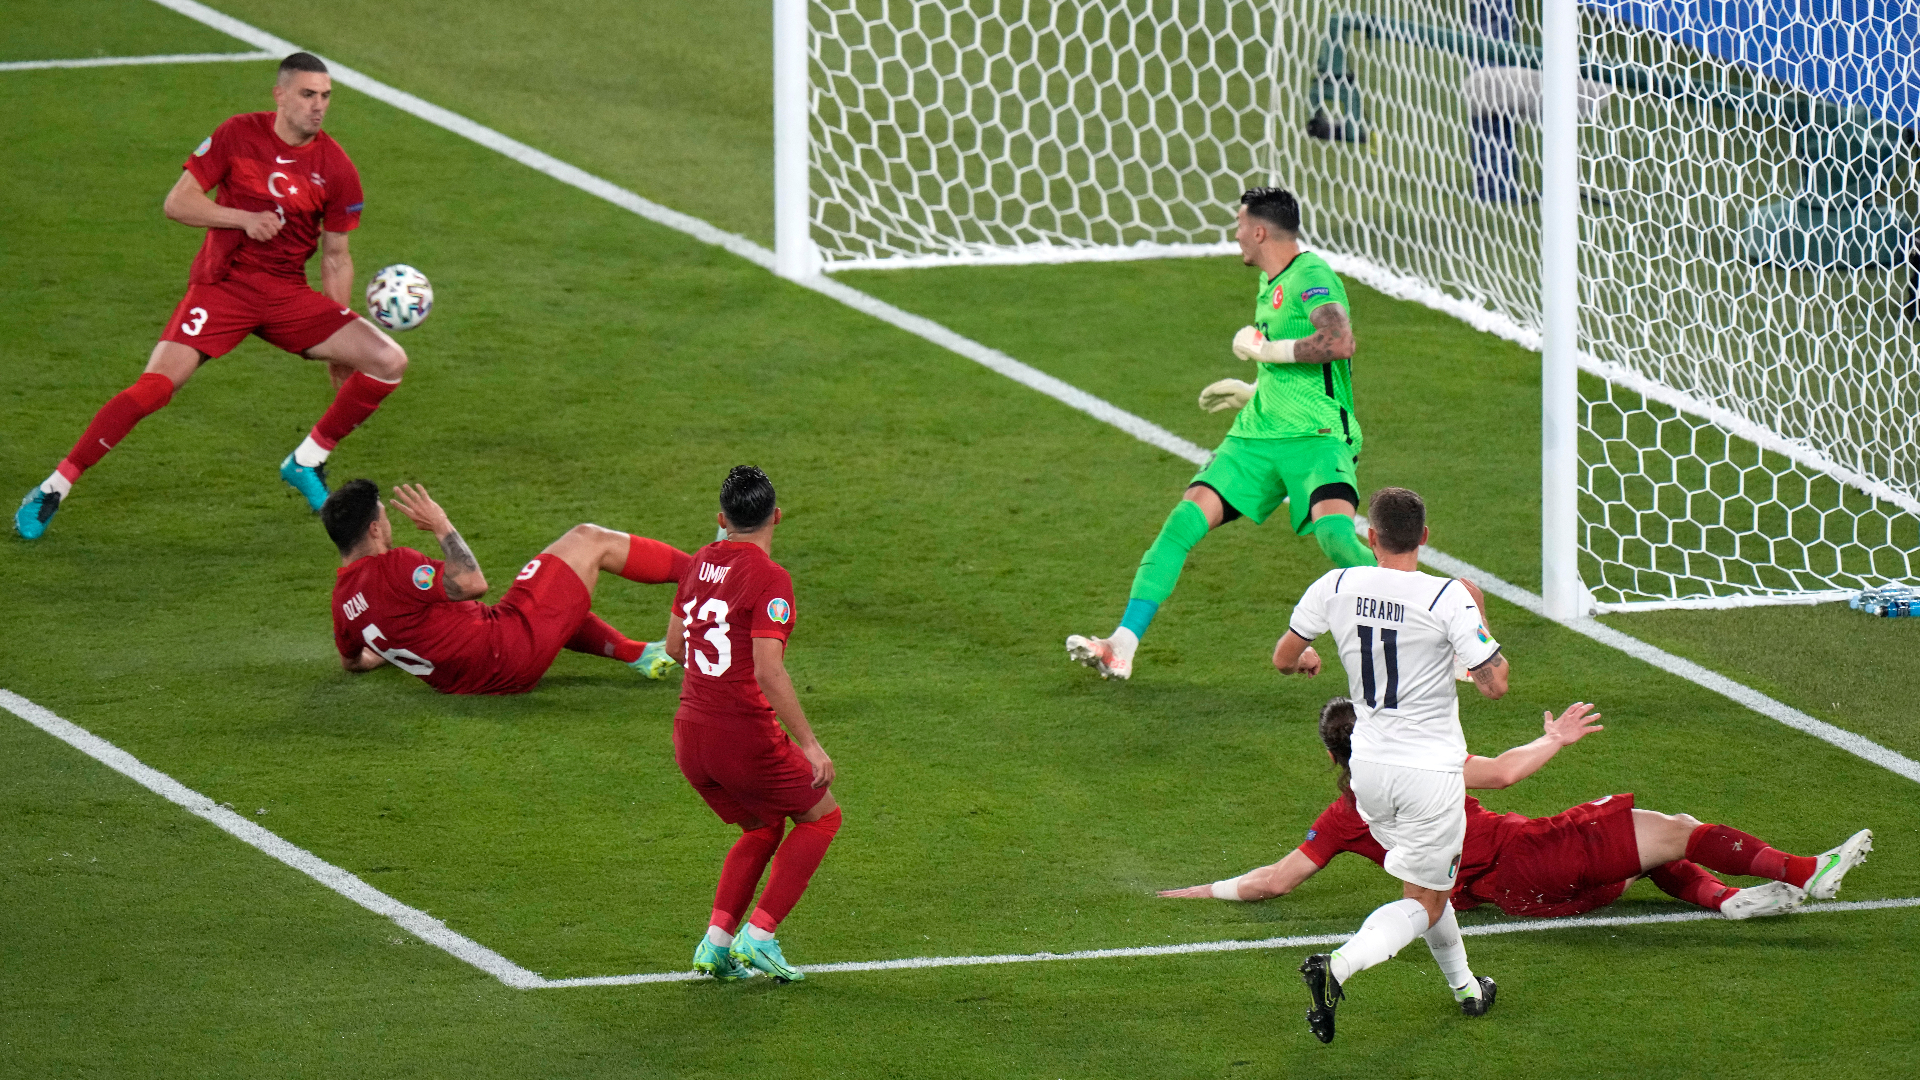 'Juve's in his blood!' – Turkish defender Demiral nets historic own goal to open Euro 2020 against Italy